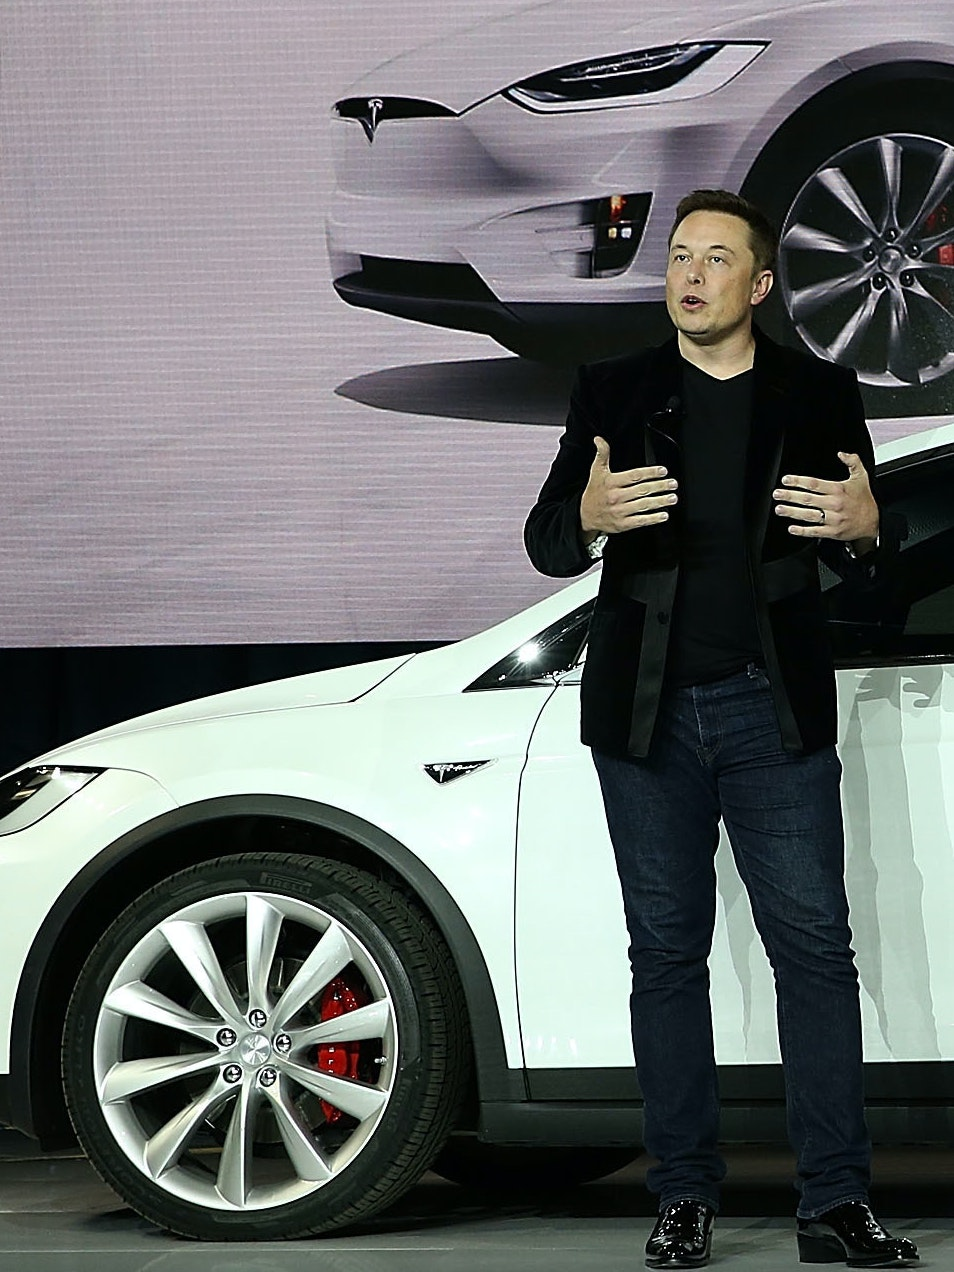 FREMONT, CA - SEPTEMBER 29:  Tesla CEO Elon Musk speaks during an event to launch the new Tesla Model X Crossover SUV on September 29, 2015 in Fremont, California. After several production delays, Elon Musk officially launched the much anticipated Tesla Model X Crossover SUV. The  (Photo by Justin Sullivan/Getty Images)